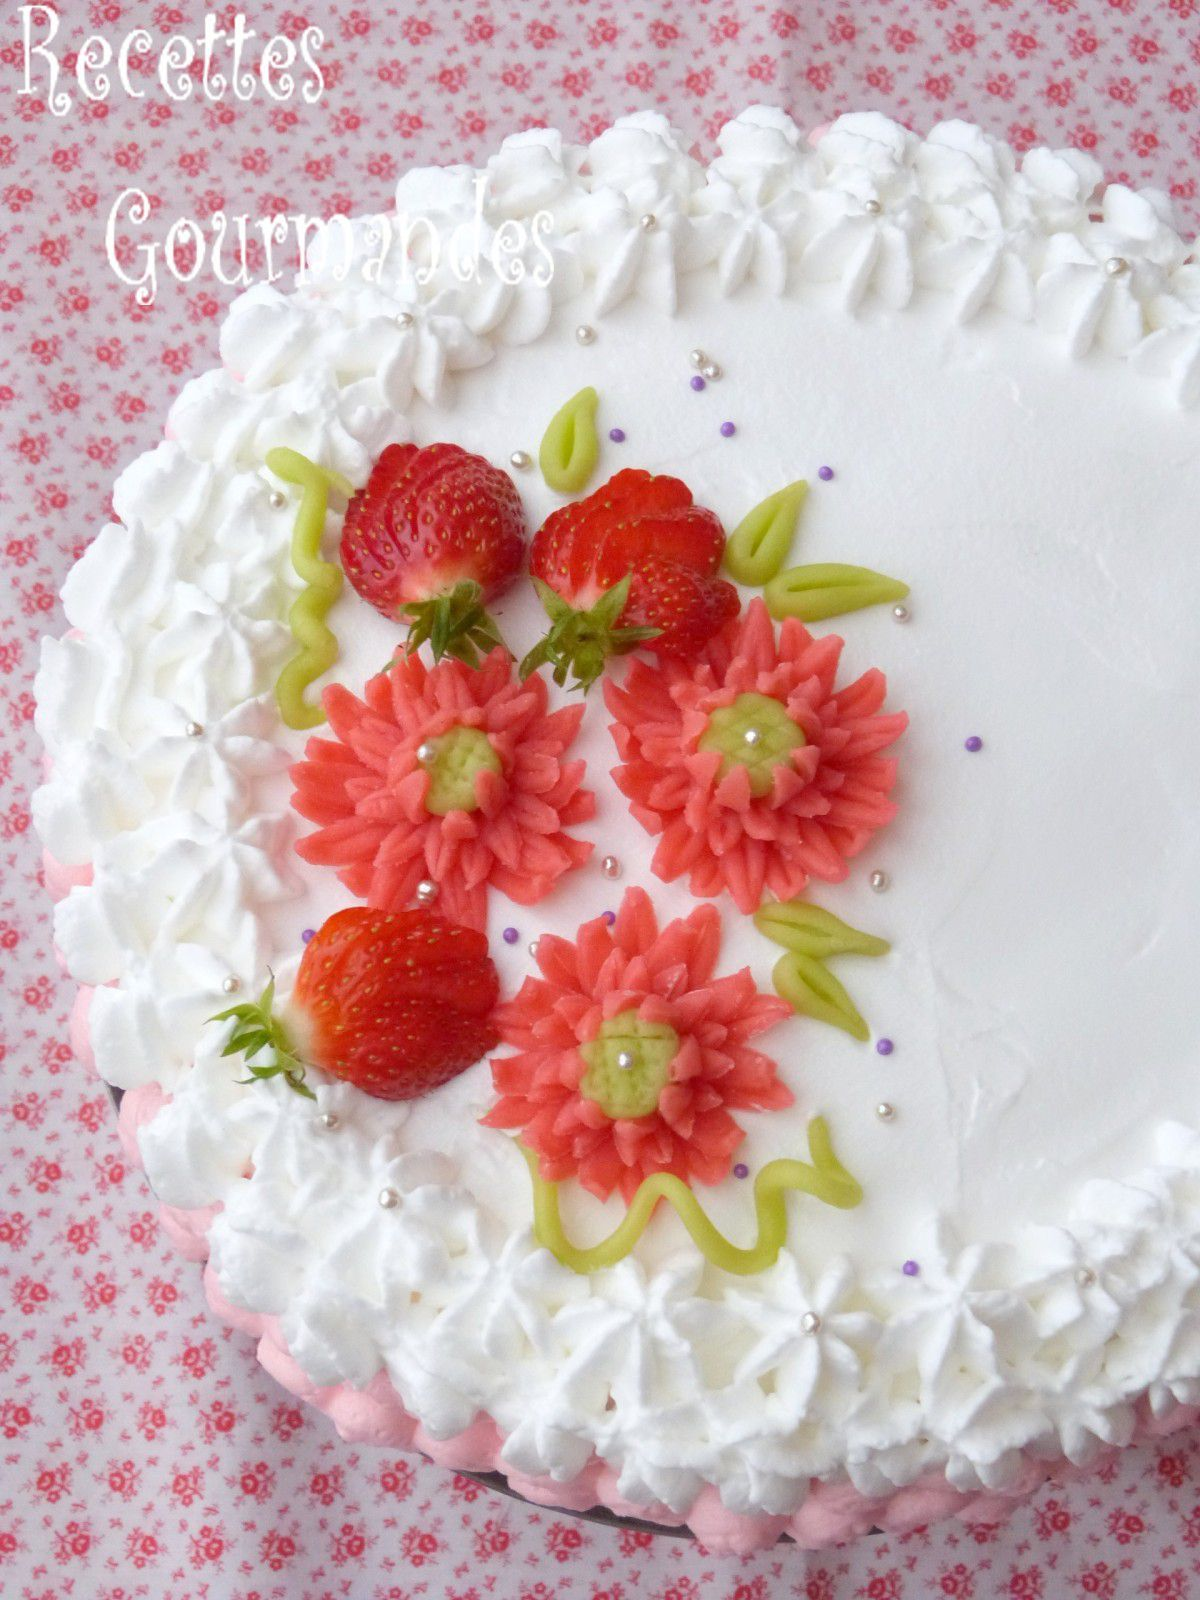 Decoration gateau a la creme chantilly - Decoration gateau avec creme chantilly ...